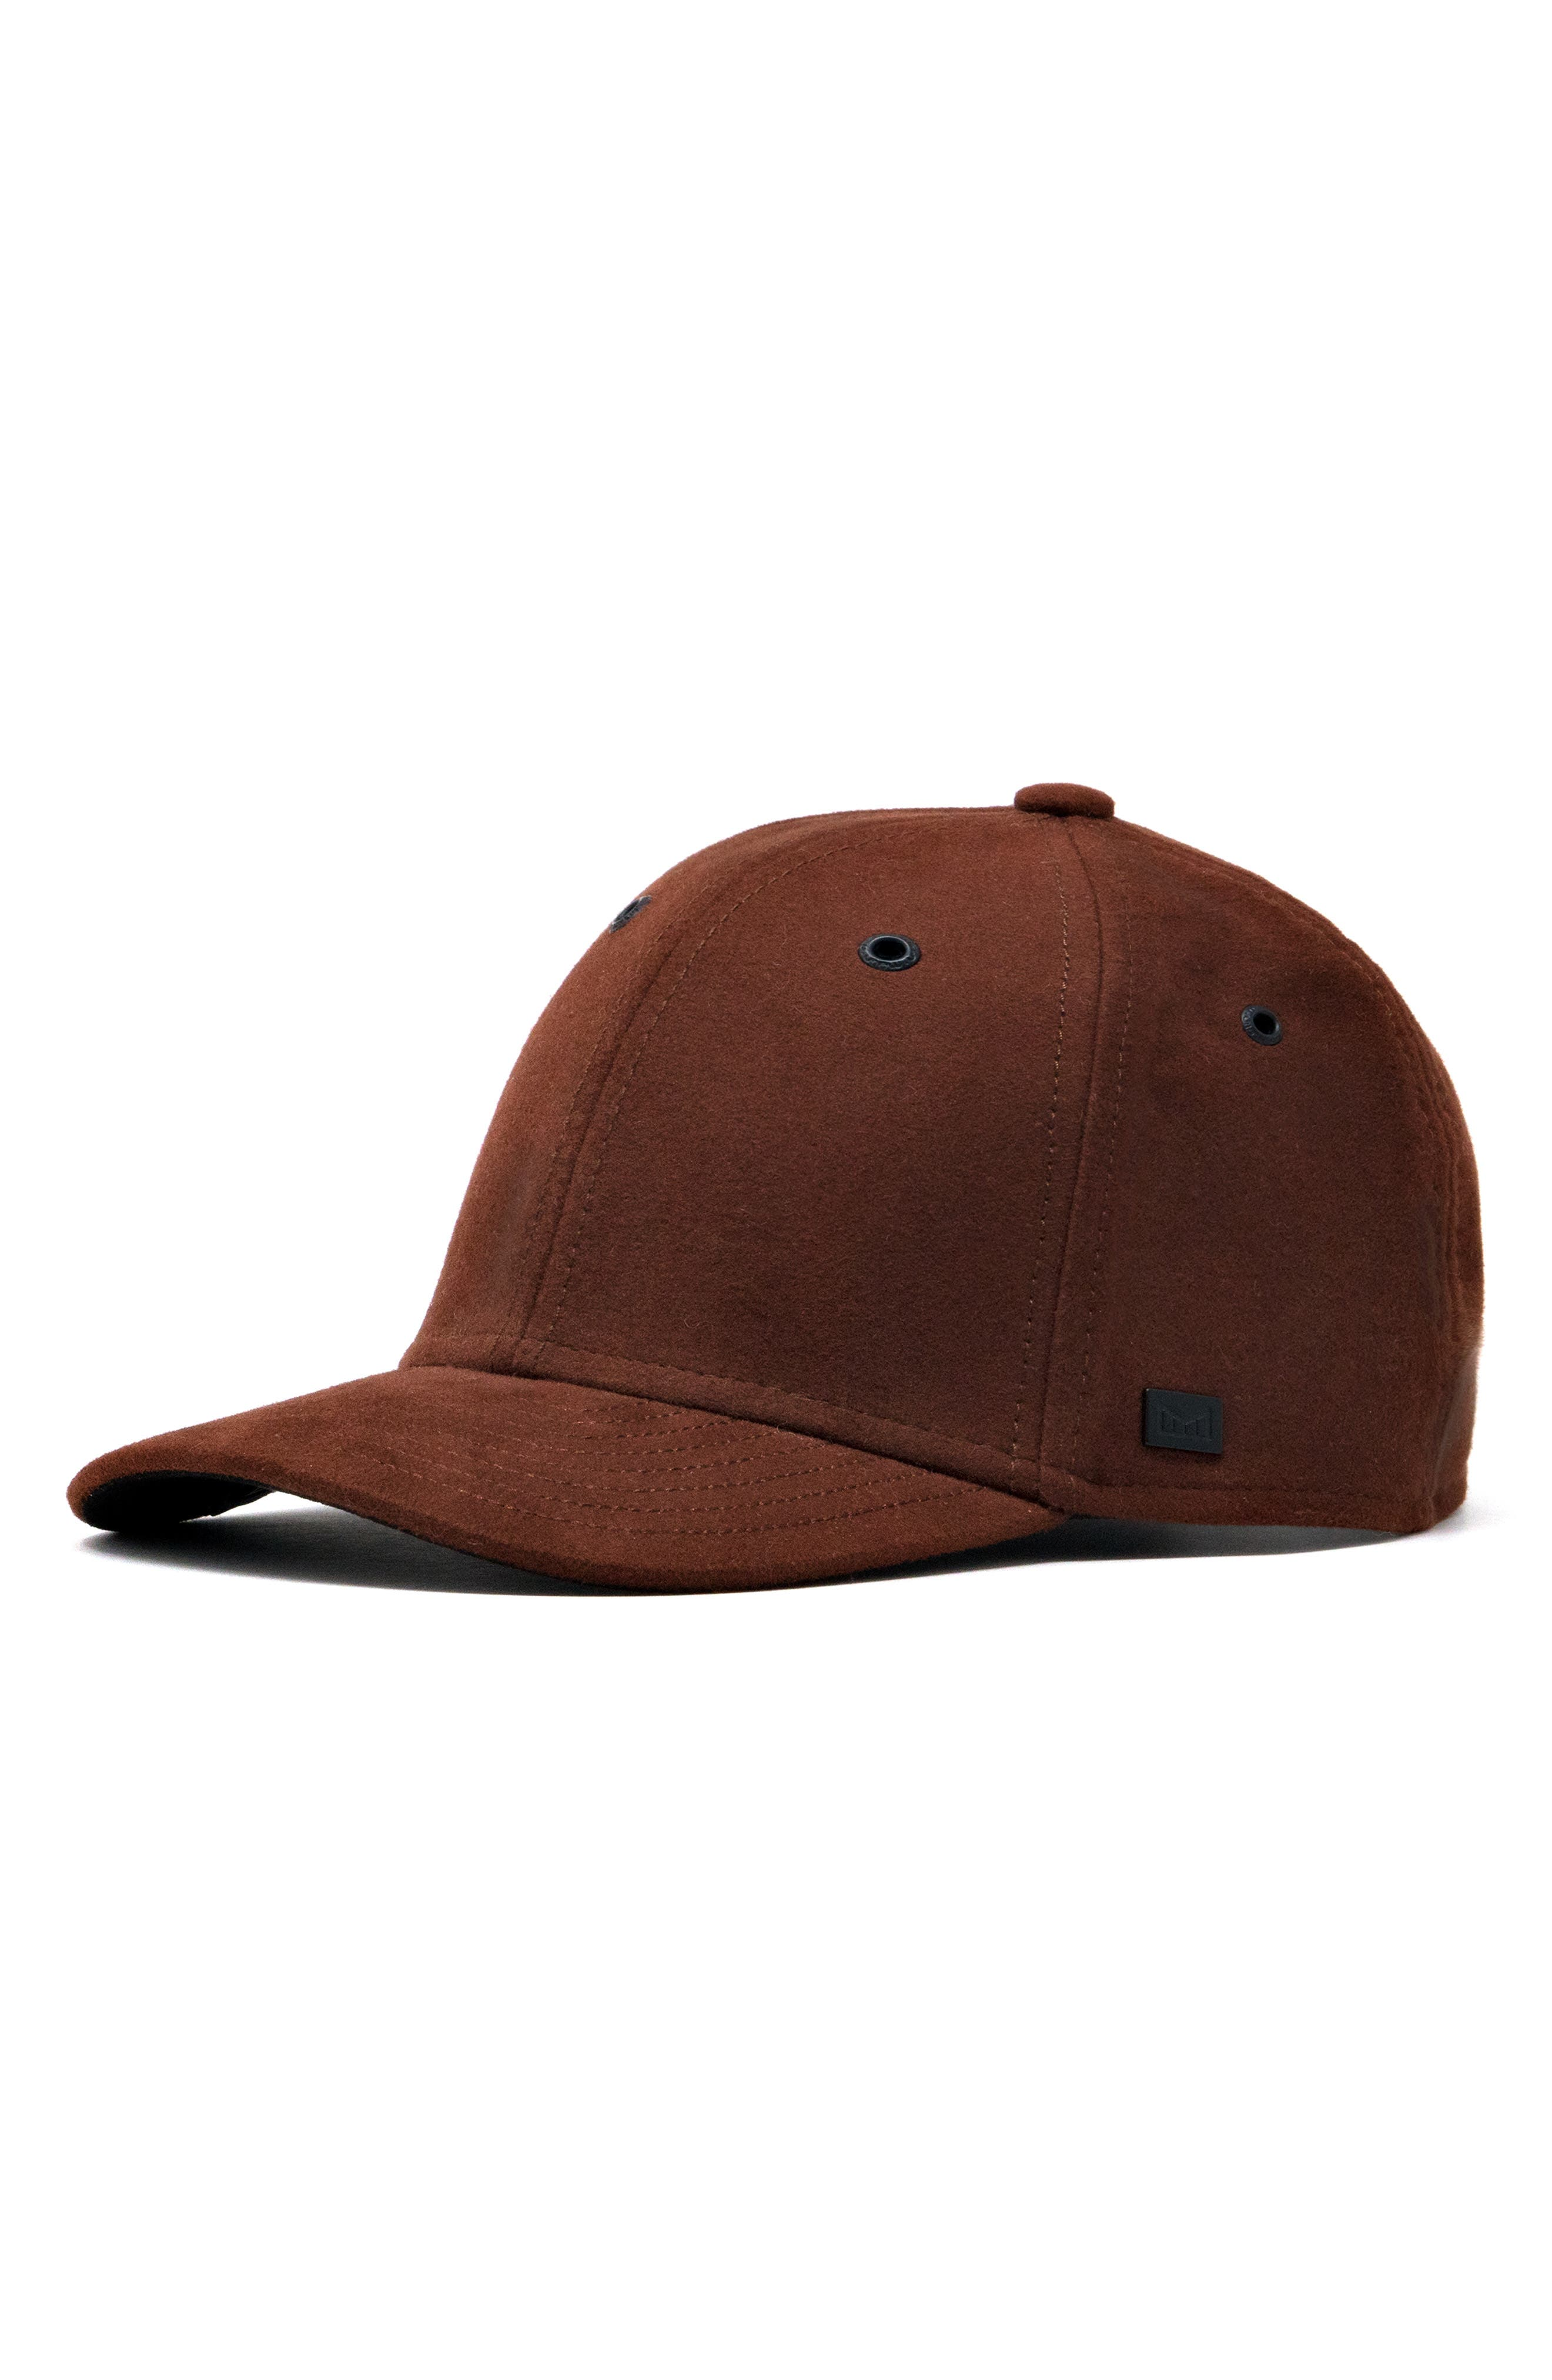 MELIN The Ace Sueded Cotton Cap in Rust